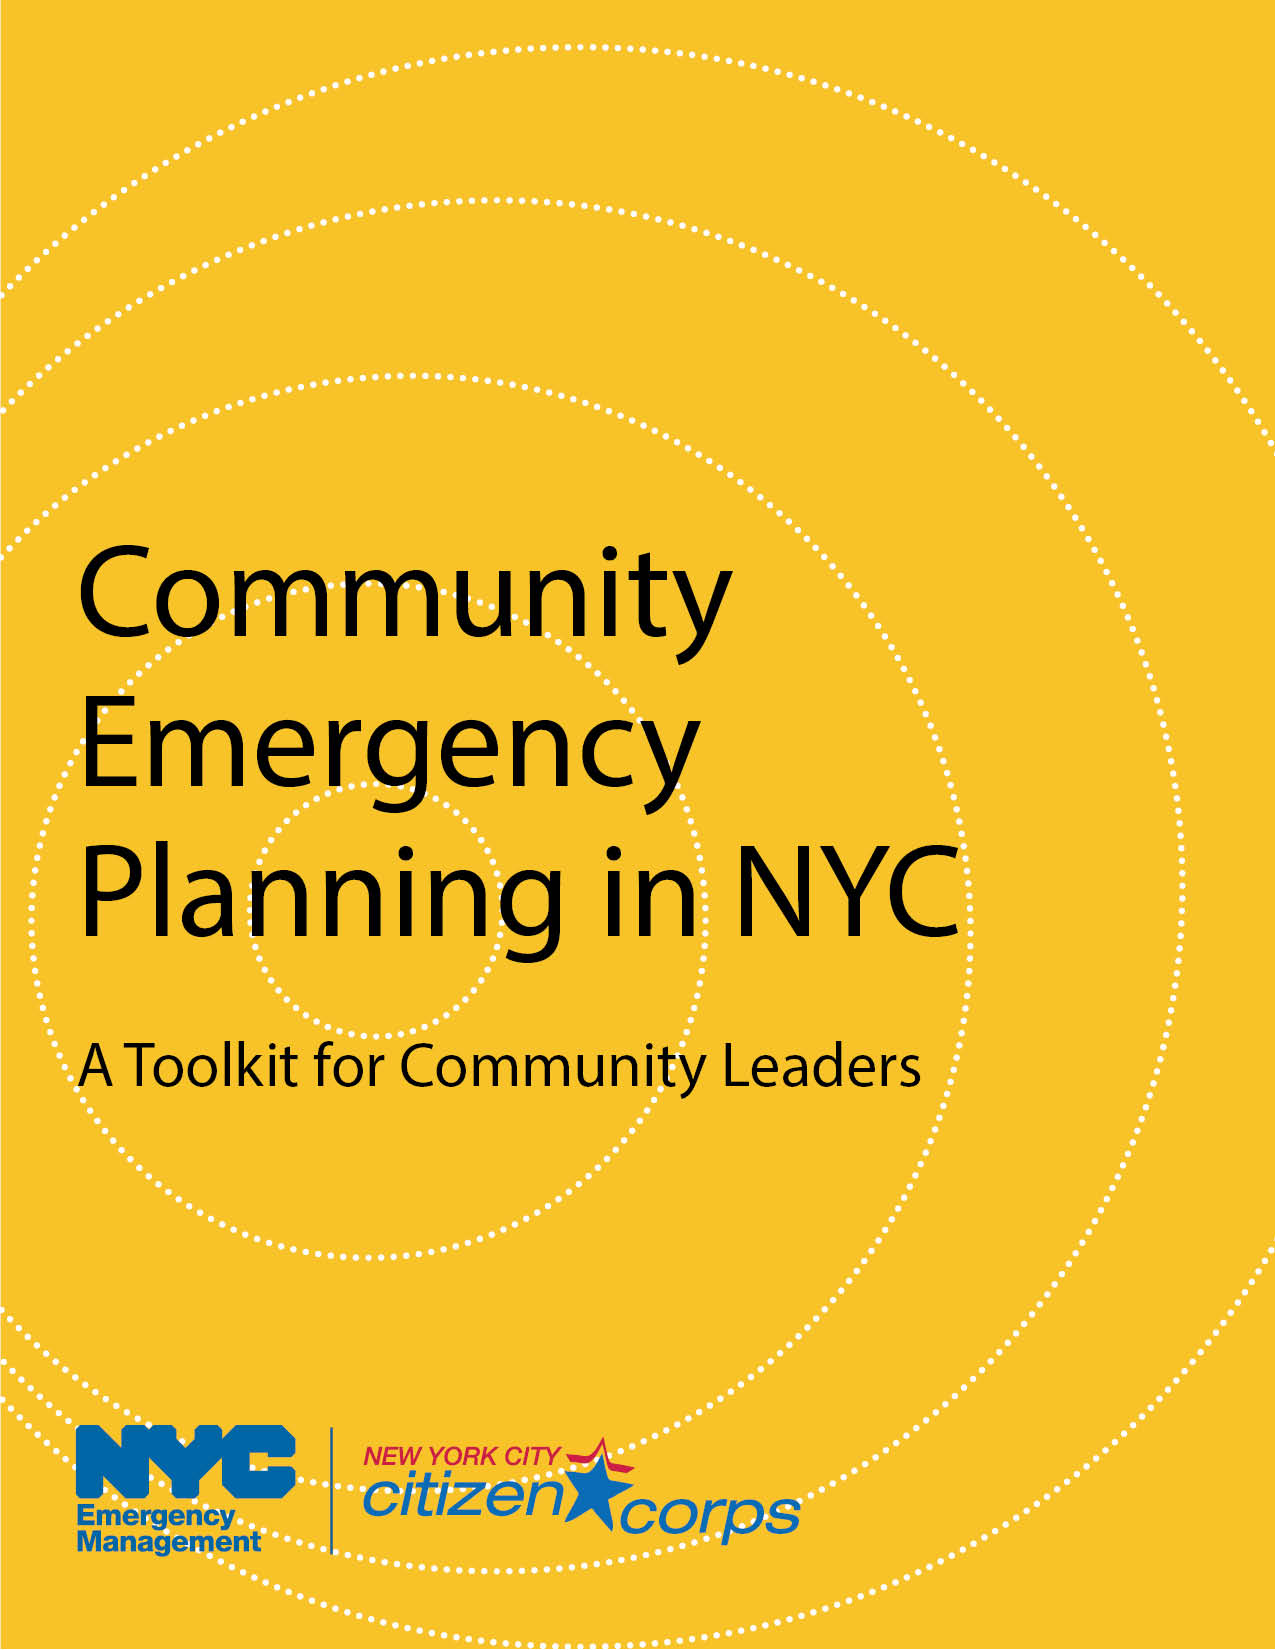 cover of the Community Emergency Planning Toolkit